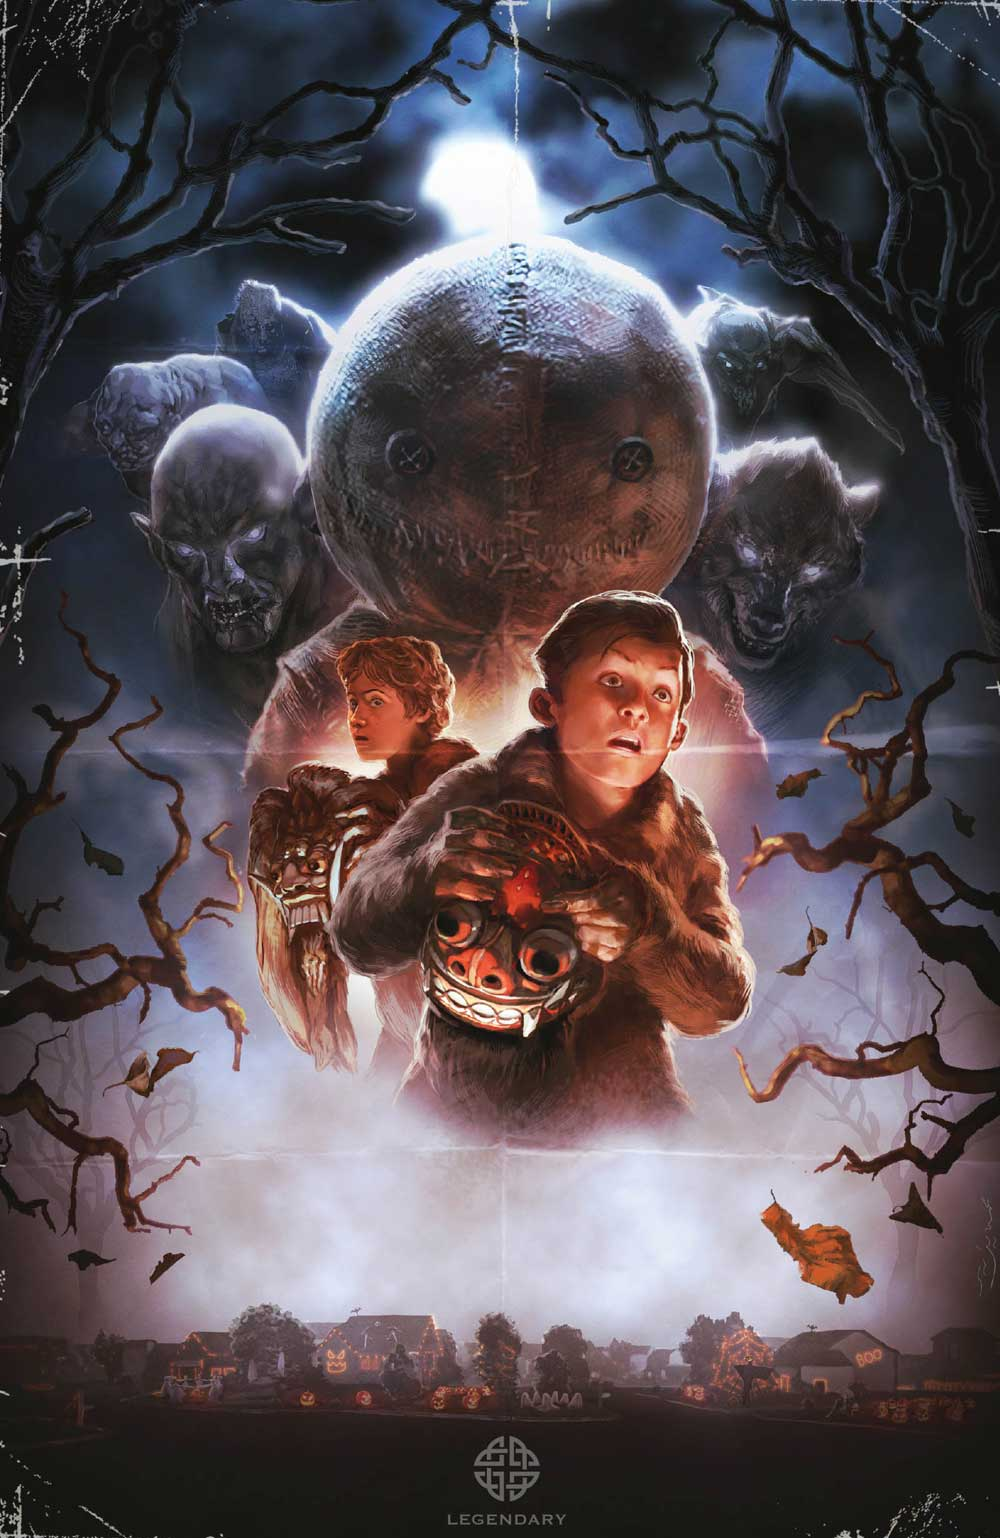 http://www.dreadcentral.com/news/93836/legendary-comics-haunt-your-holidays-with-trick-r-treat-and-krampus-graphic-novels/